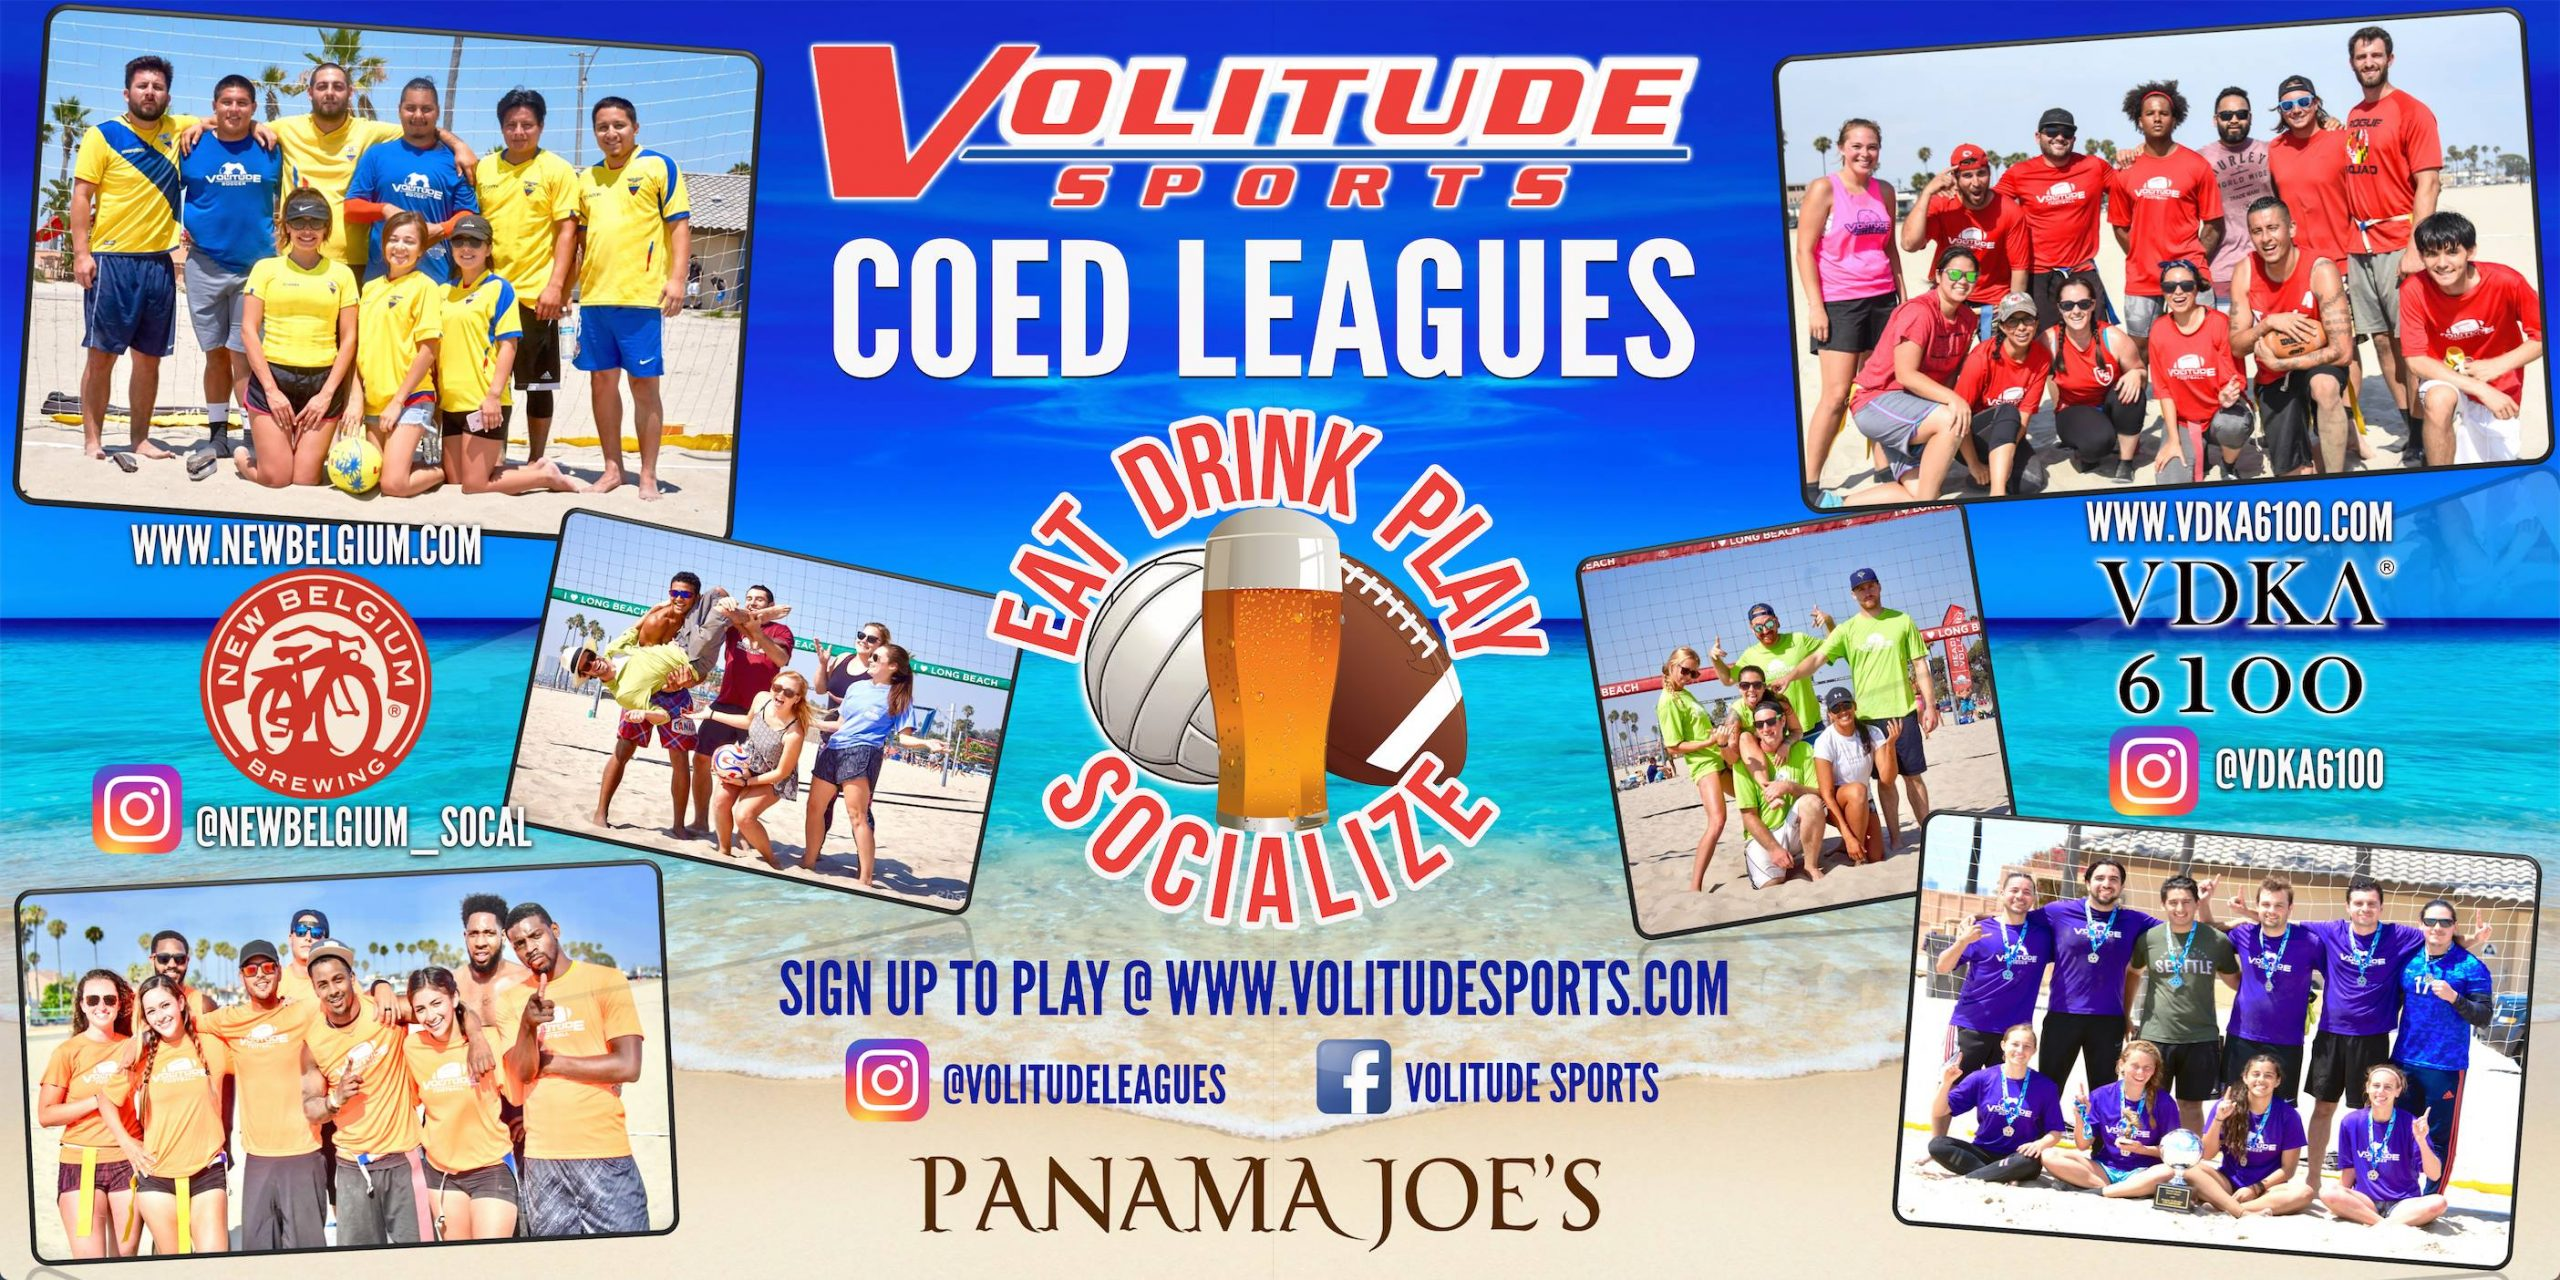 Volitude Sports Lakewood Sport Leagues Leagues Nearby With Volitude Sports